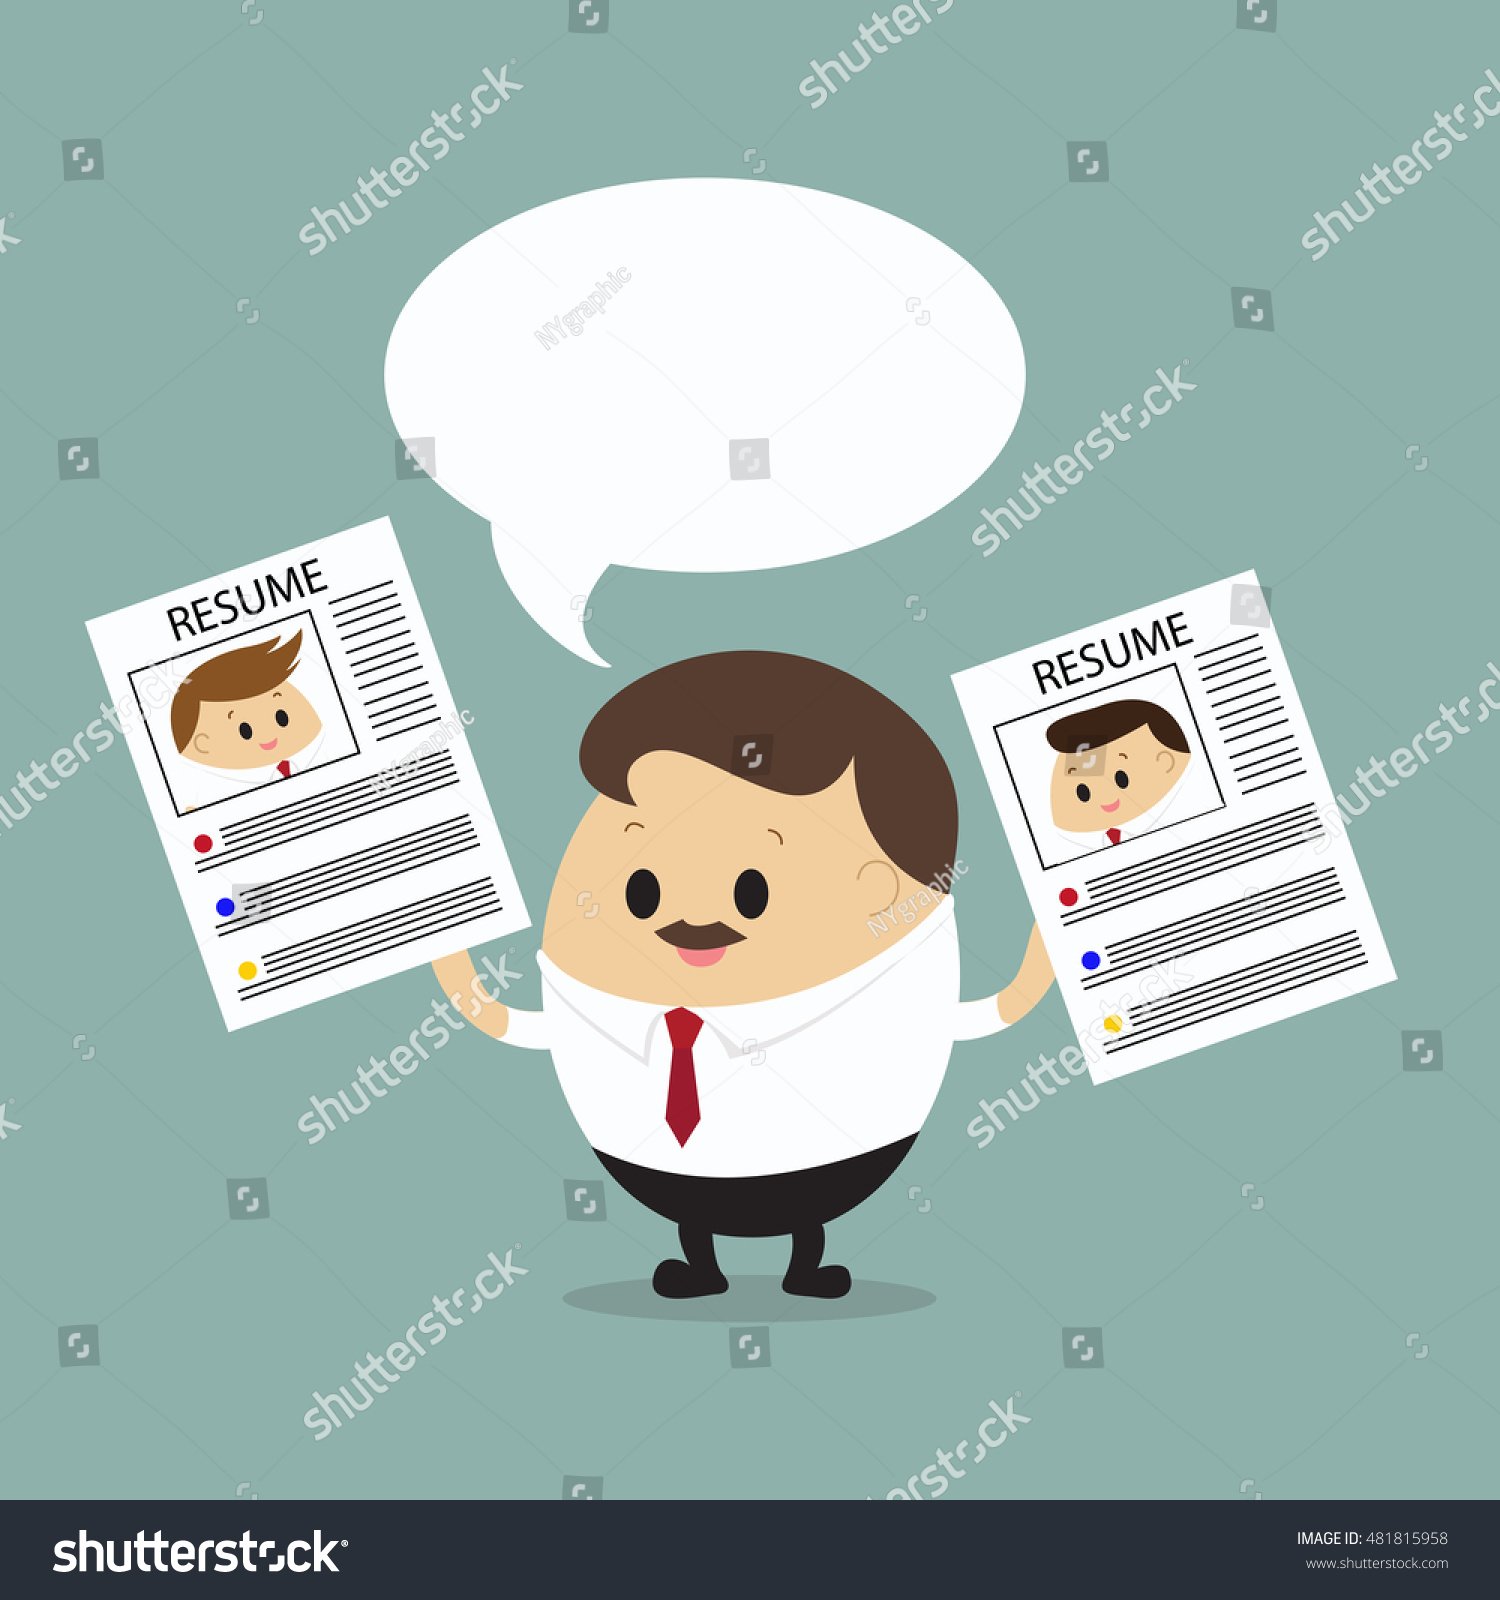 vector boss resume choosing best resume stock vector 481815958 vector of boss resume for choosing best resume business concept hiring employment best